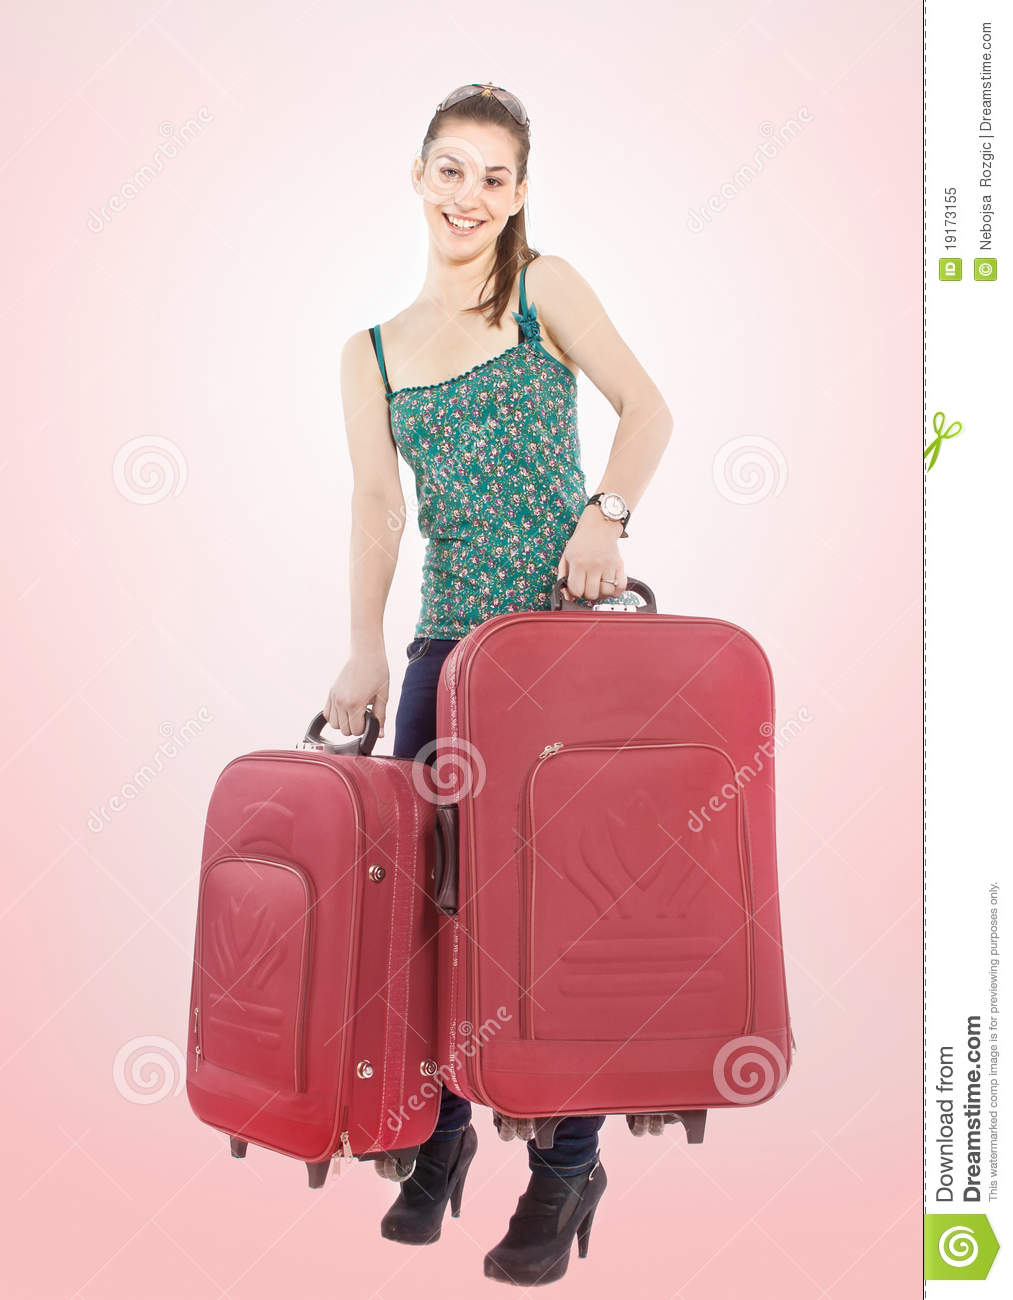 Beautiful Girl With A Travel Bags Royalty Free Stock Photo - Image ...